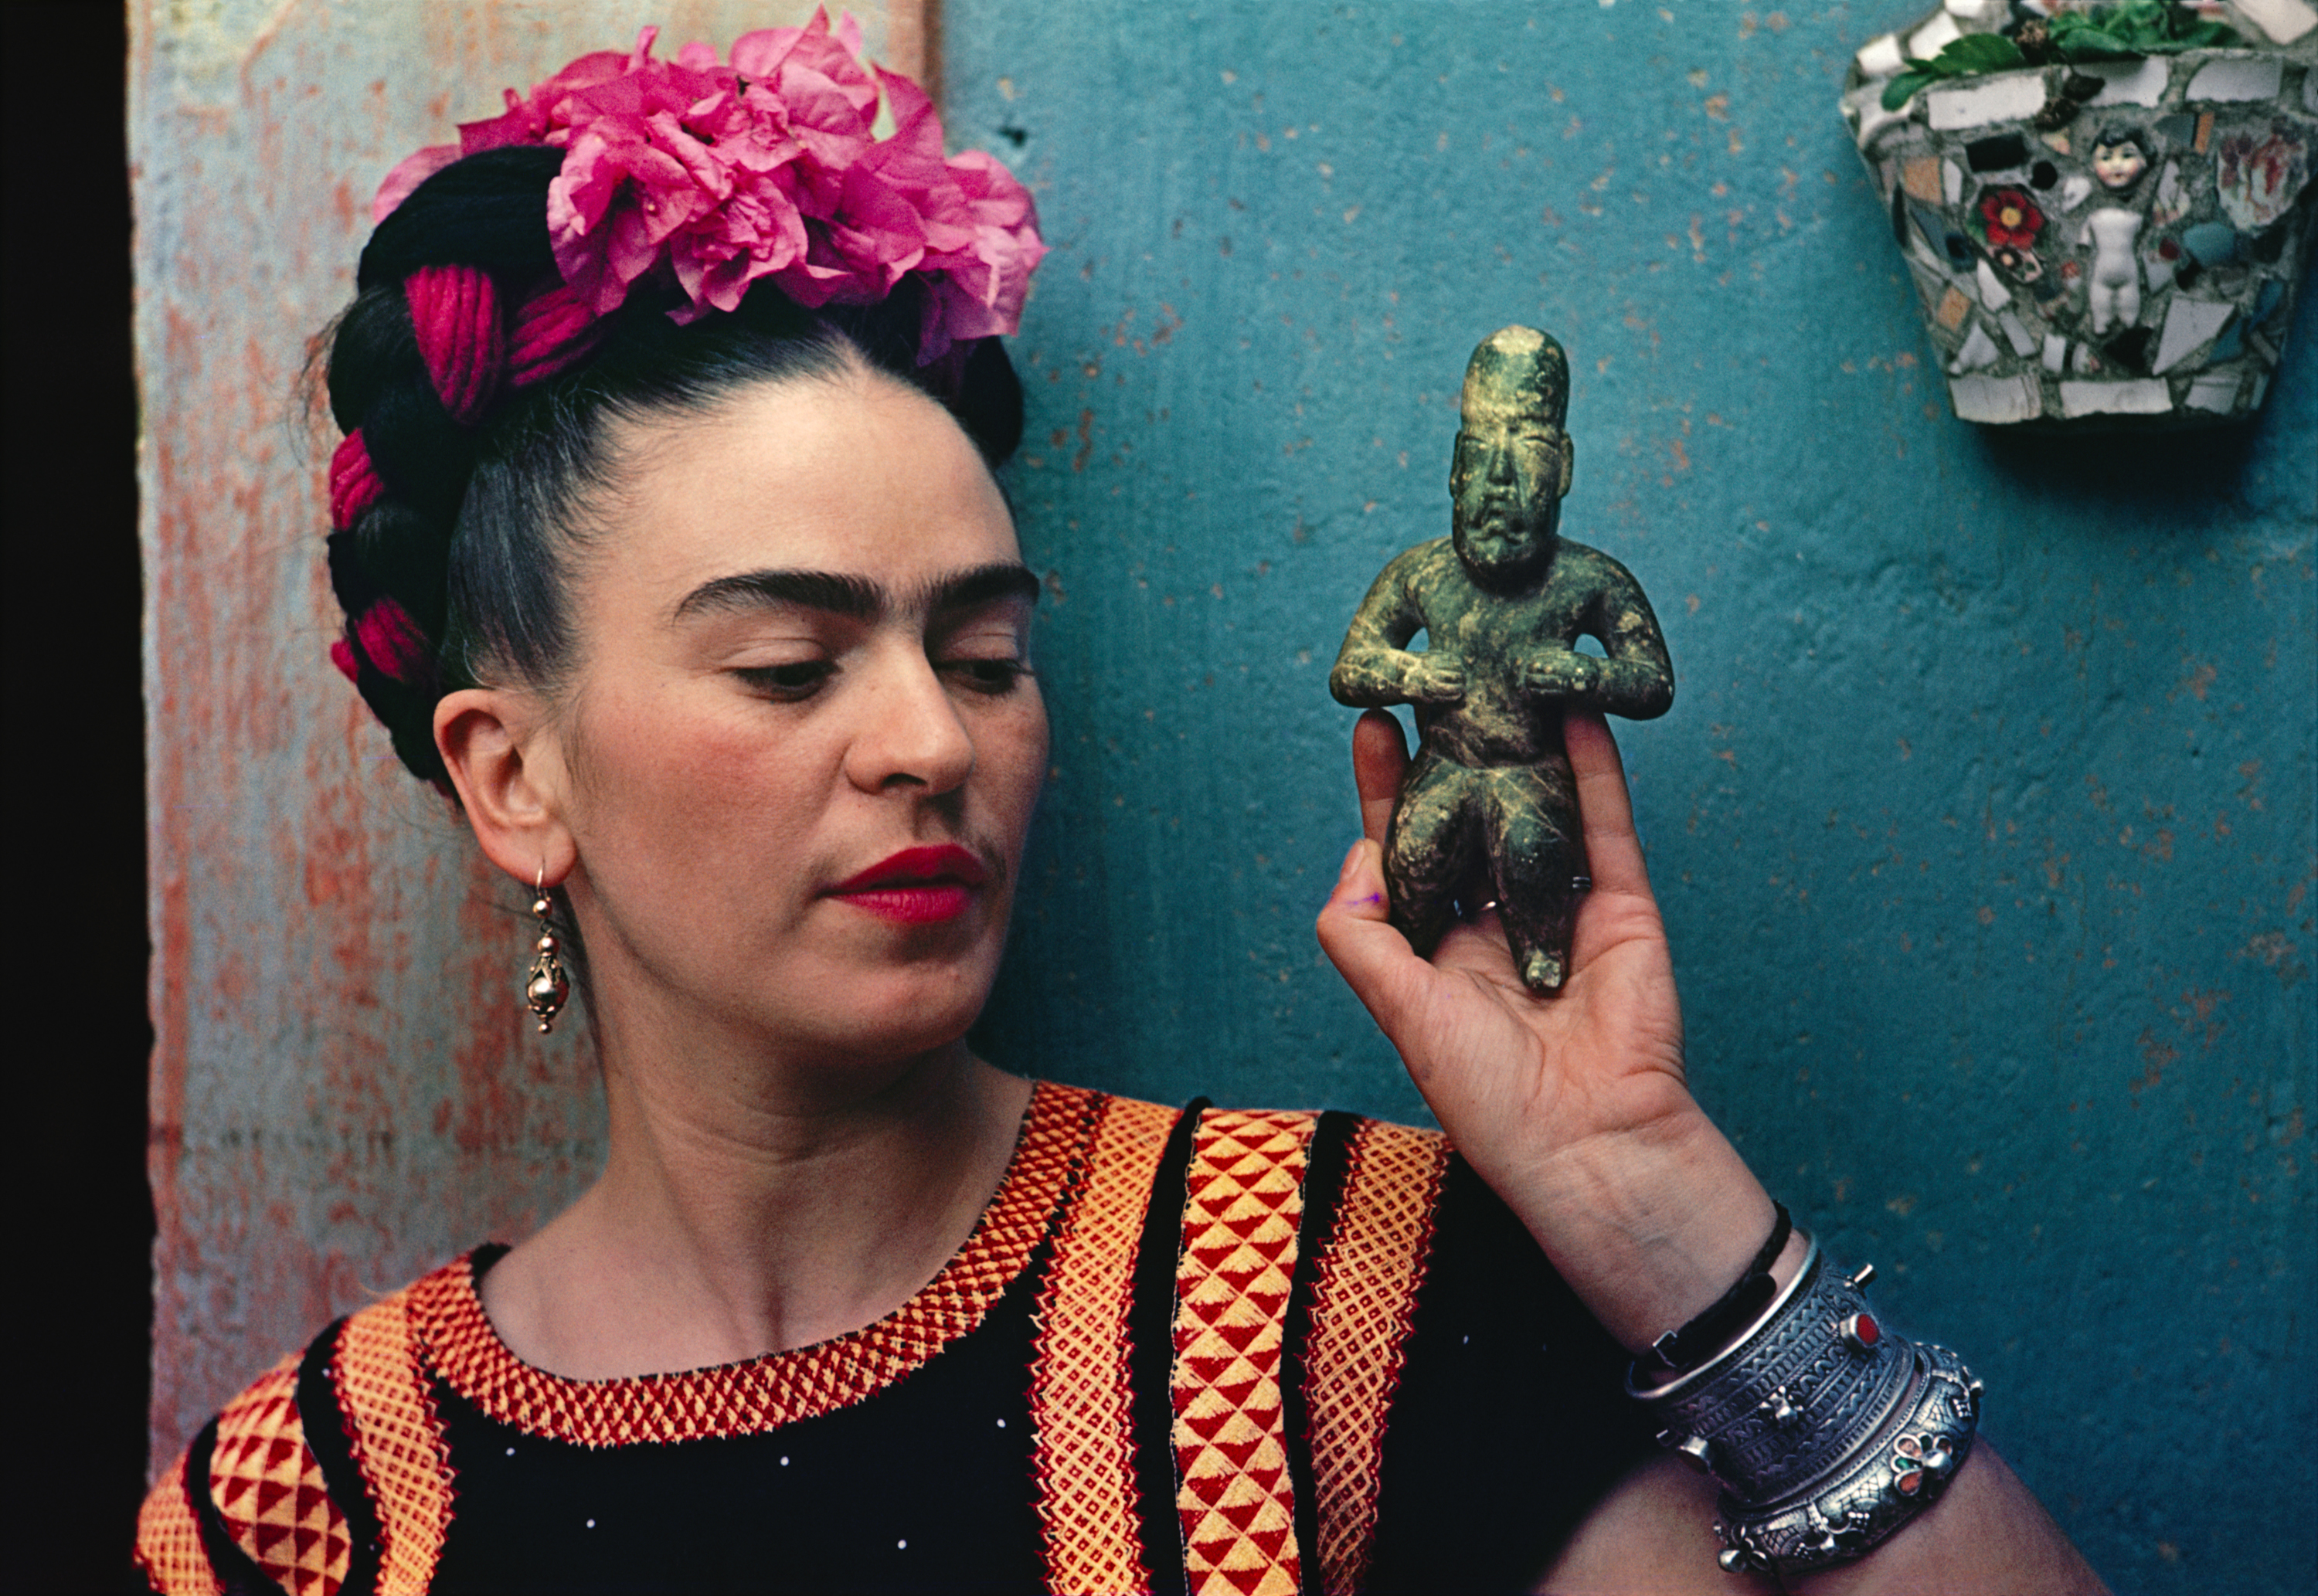 Friday Kahlo: Sensuality and Sorrow